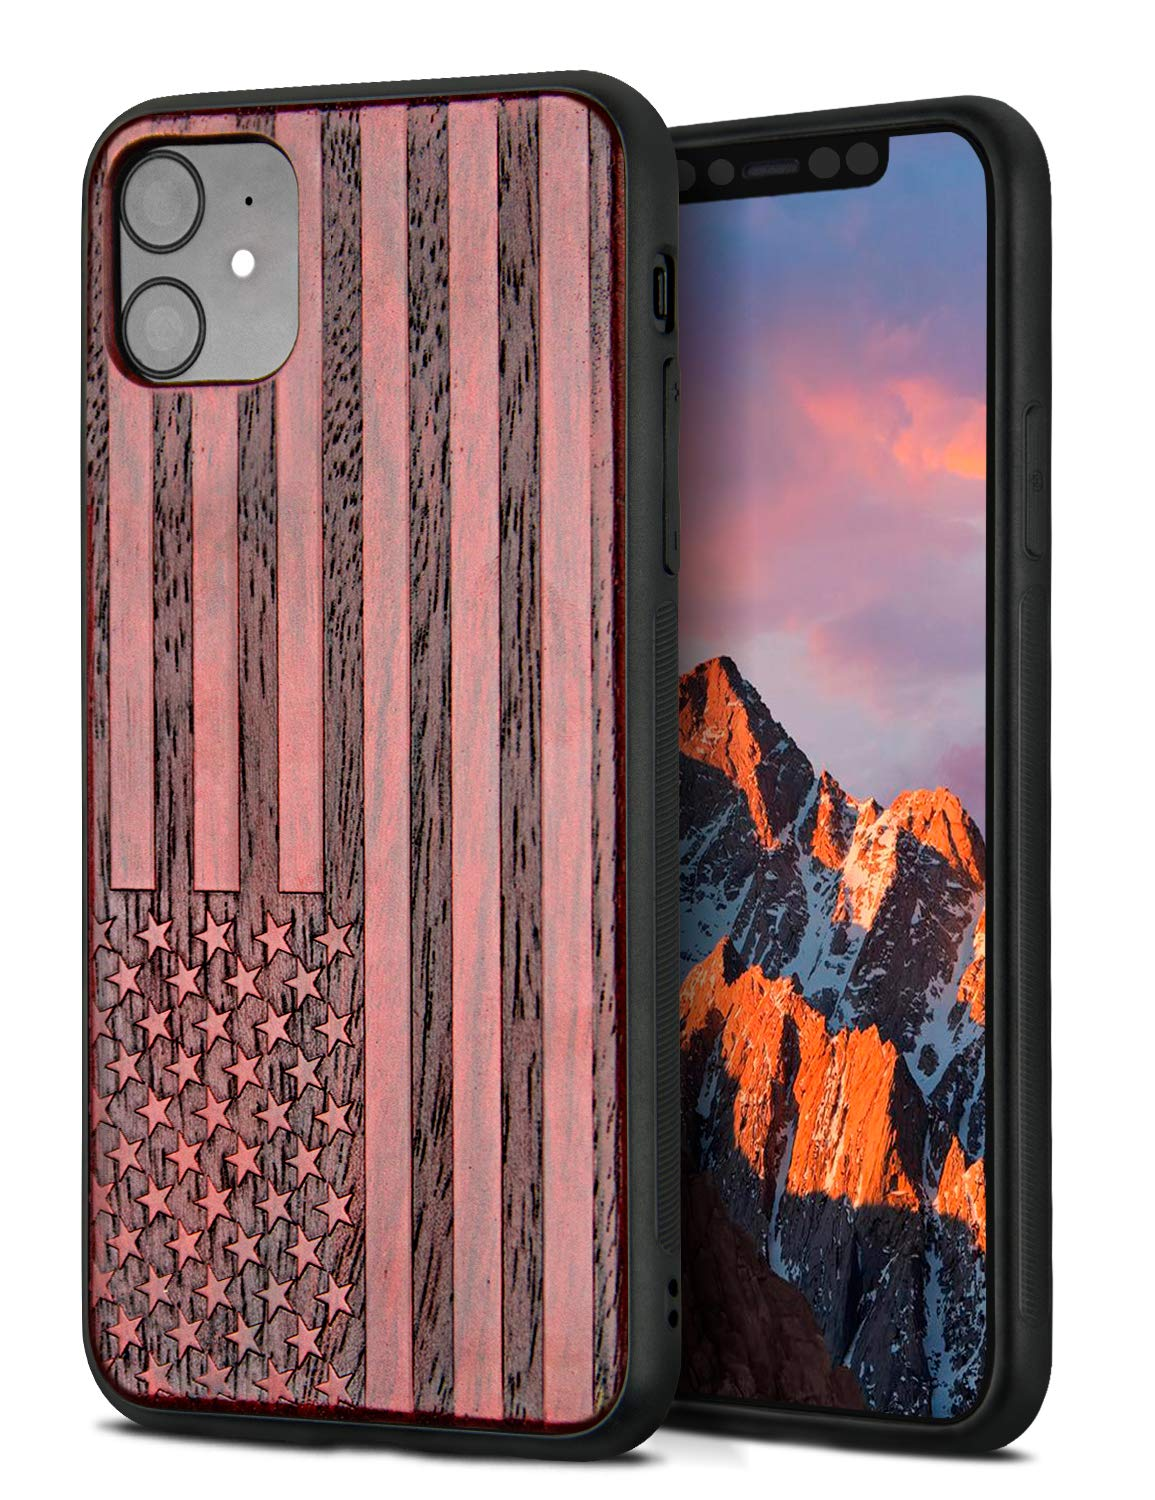 YFWOOD Compatible for iPhone 11 Case 6.1 inch, Unique Wood Shockproof Drop Proof Bumper Protection Cover for iPhone 11 (Banner)